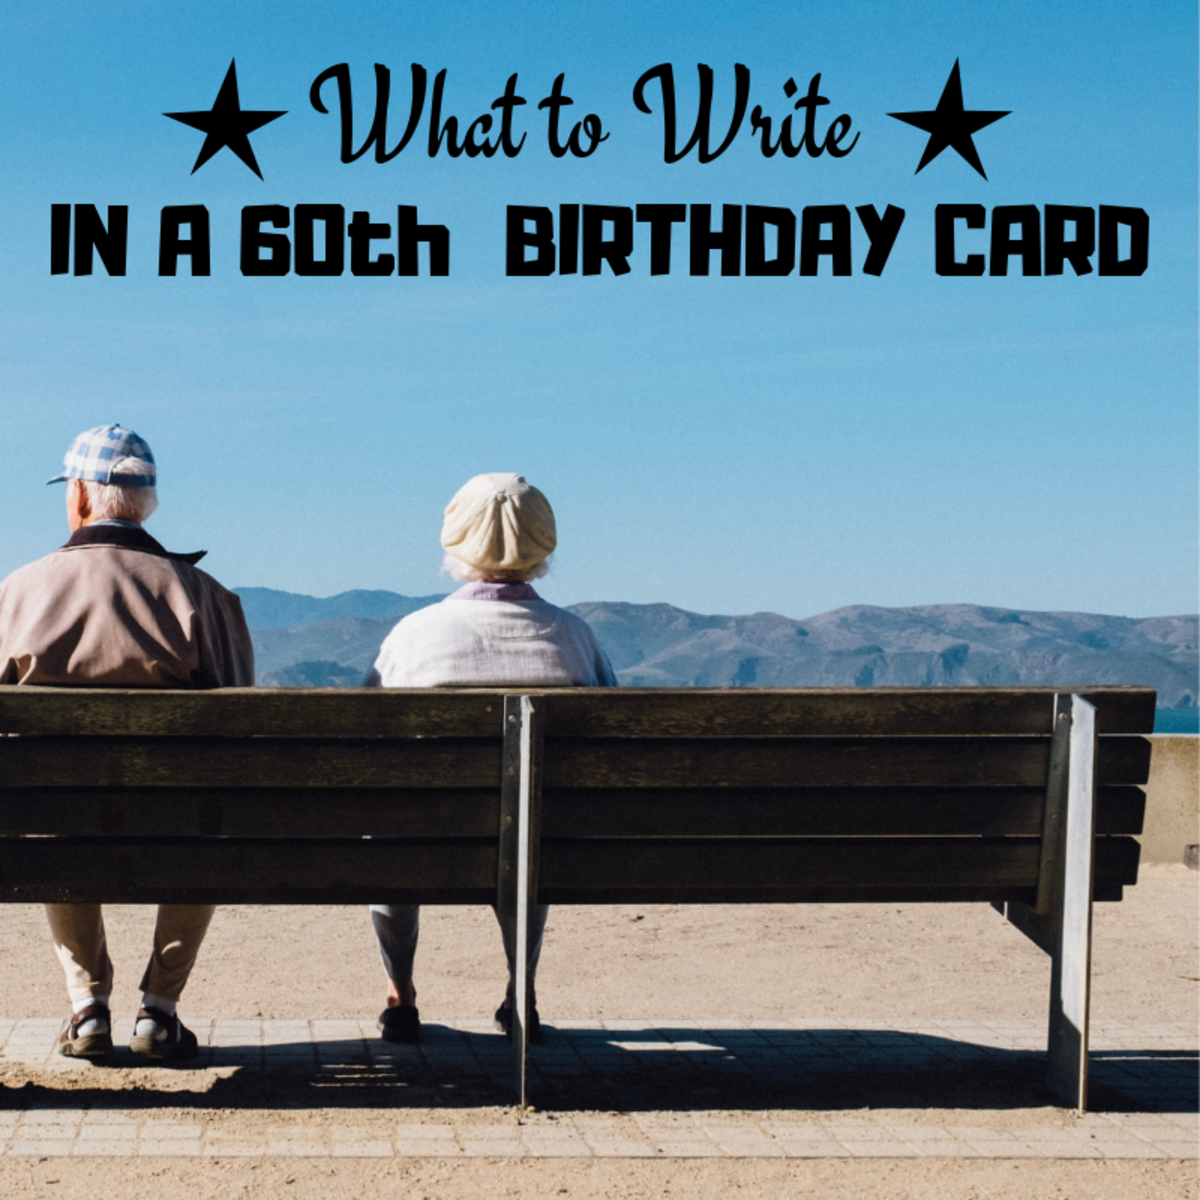 60th Birthday Card Messages, Wishes, Sayings, and Poems